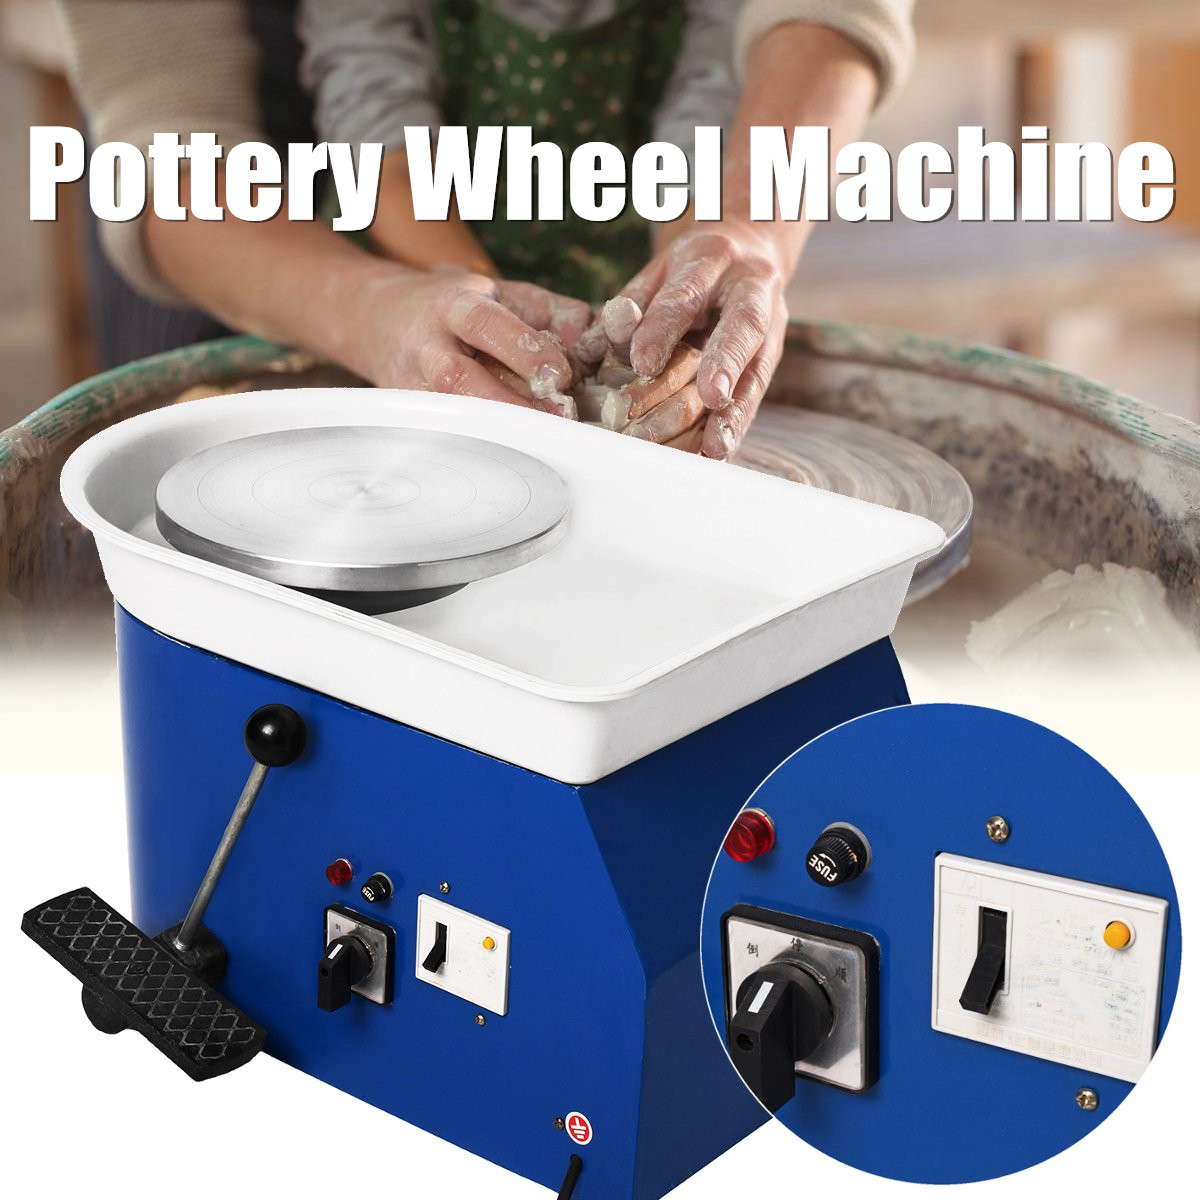 250W 220V Pottery Forming Machine Pottery Wheel Ceramic Machine Ceramics DIY Clay Machine world famous novel the little prince chinese edition book for children kids story and learn chinese book